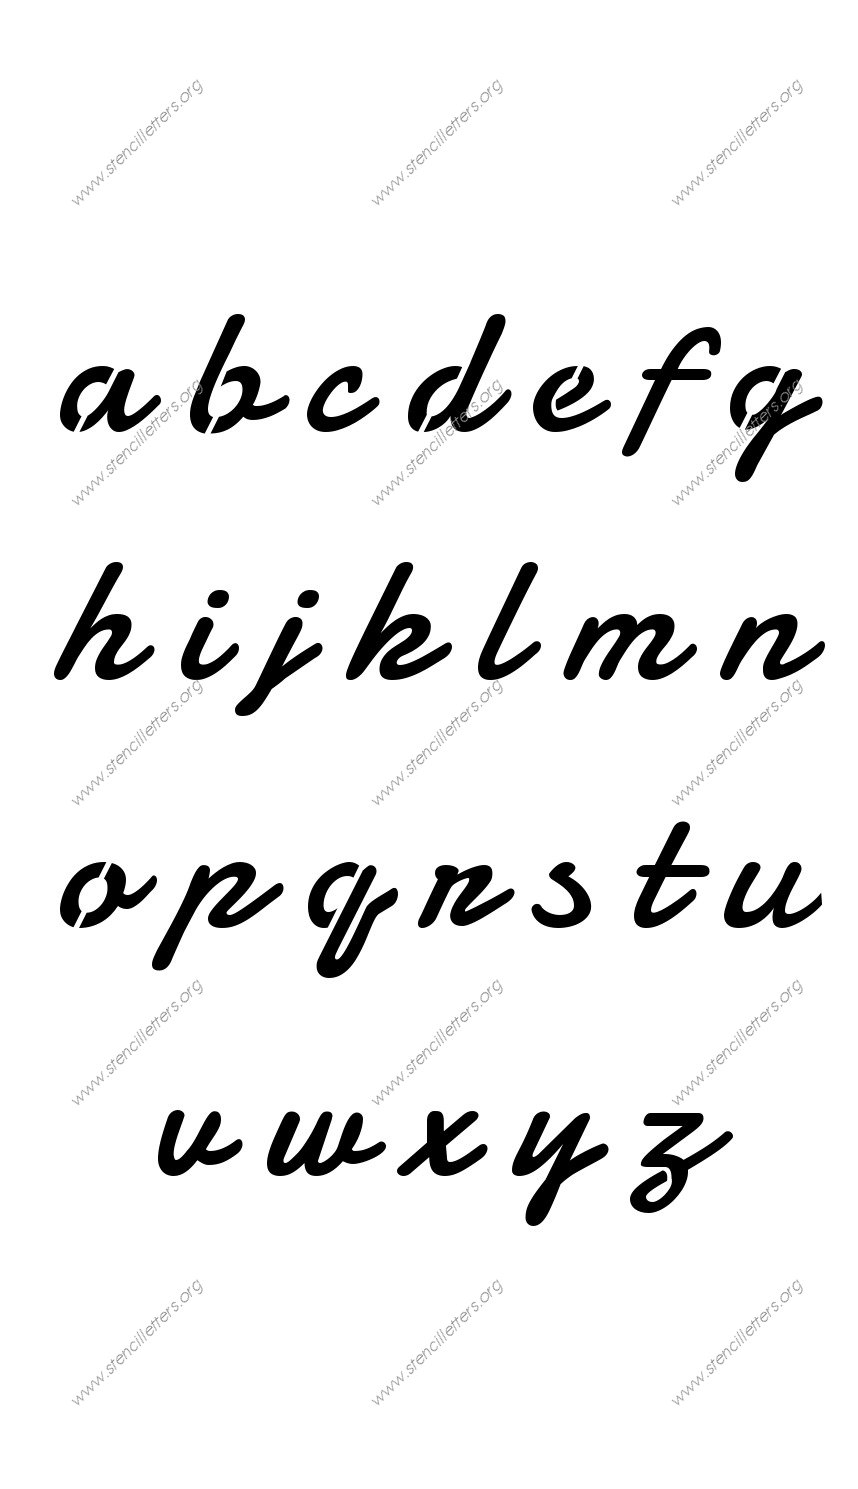 Display Script Cursive A to Z lowercase letter stencils